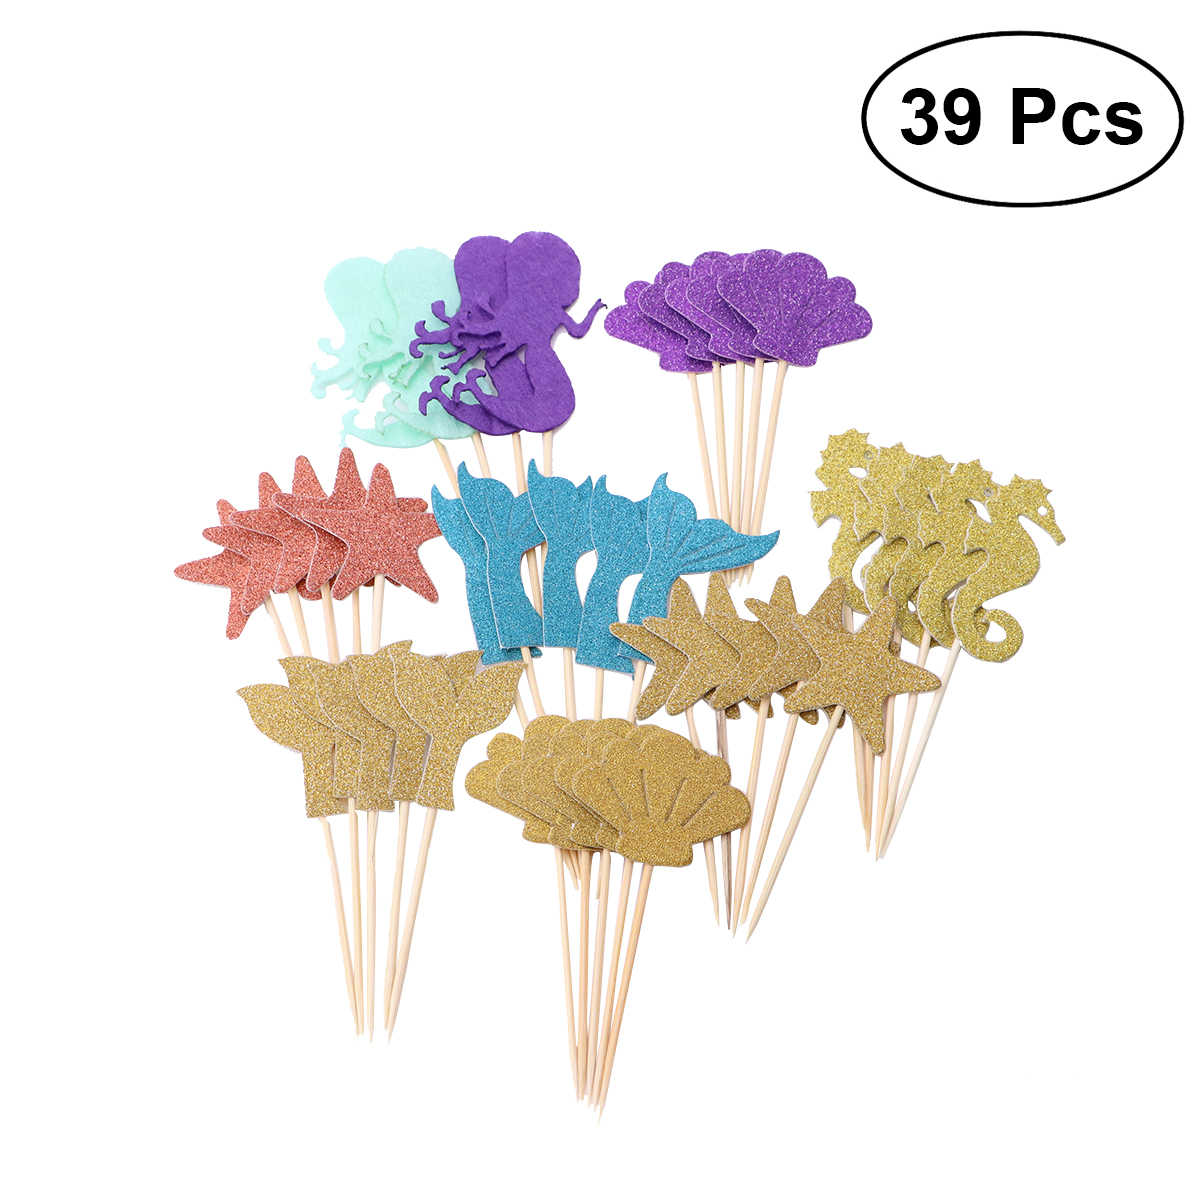 39PCS Star Attractive Cupcake Mermaid Decorative Topper Wrappers Decor for Birthday Party Supplies Mermaid Cupcake Topper